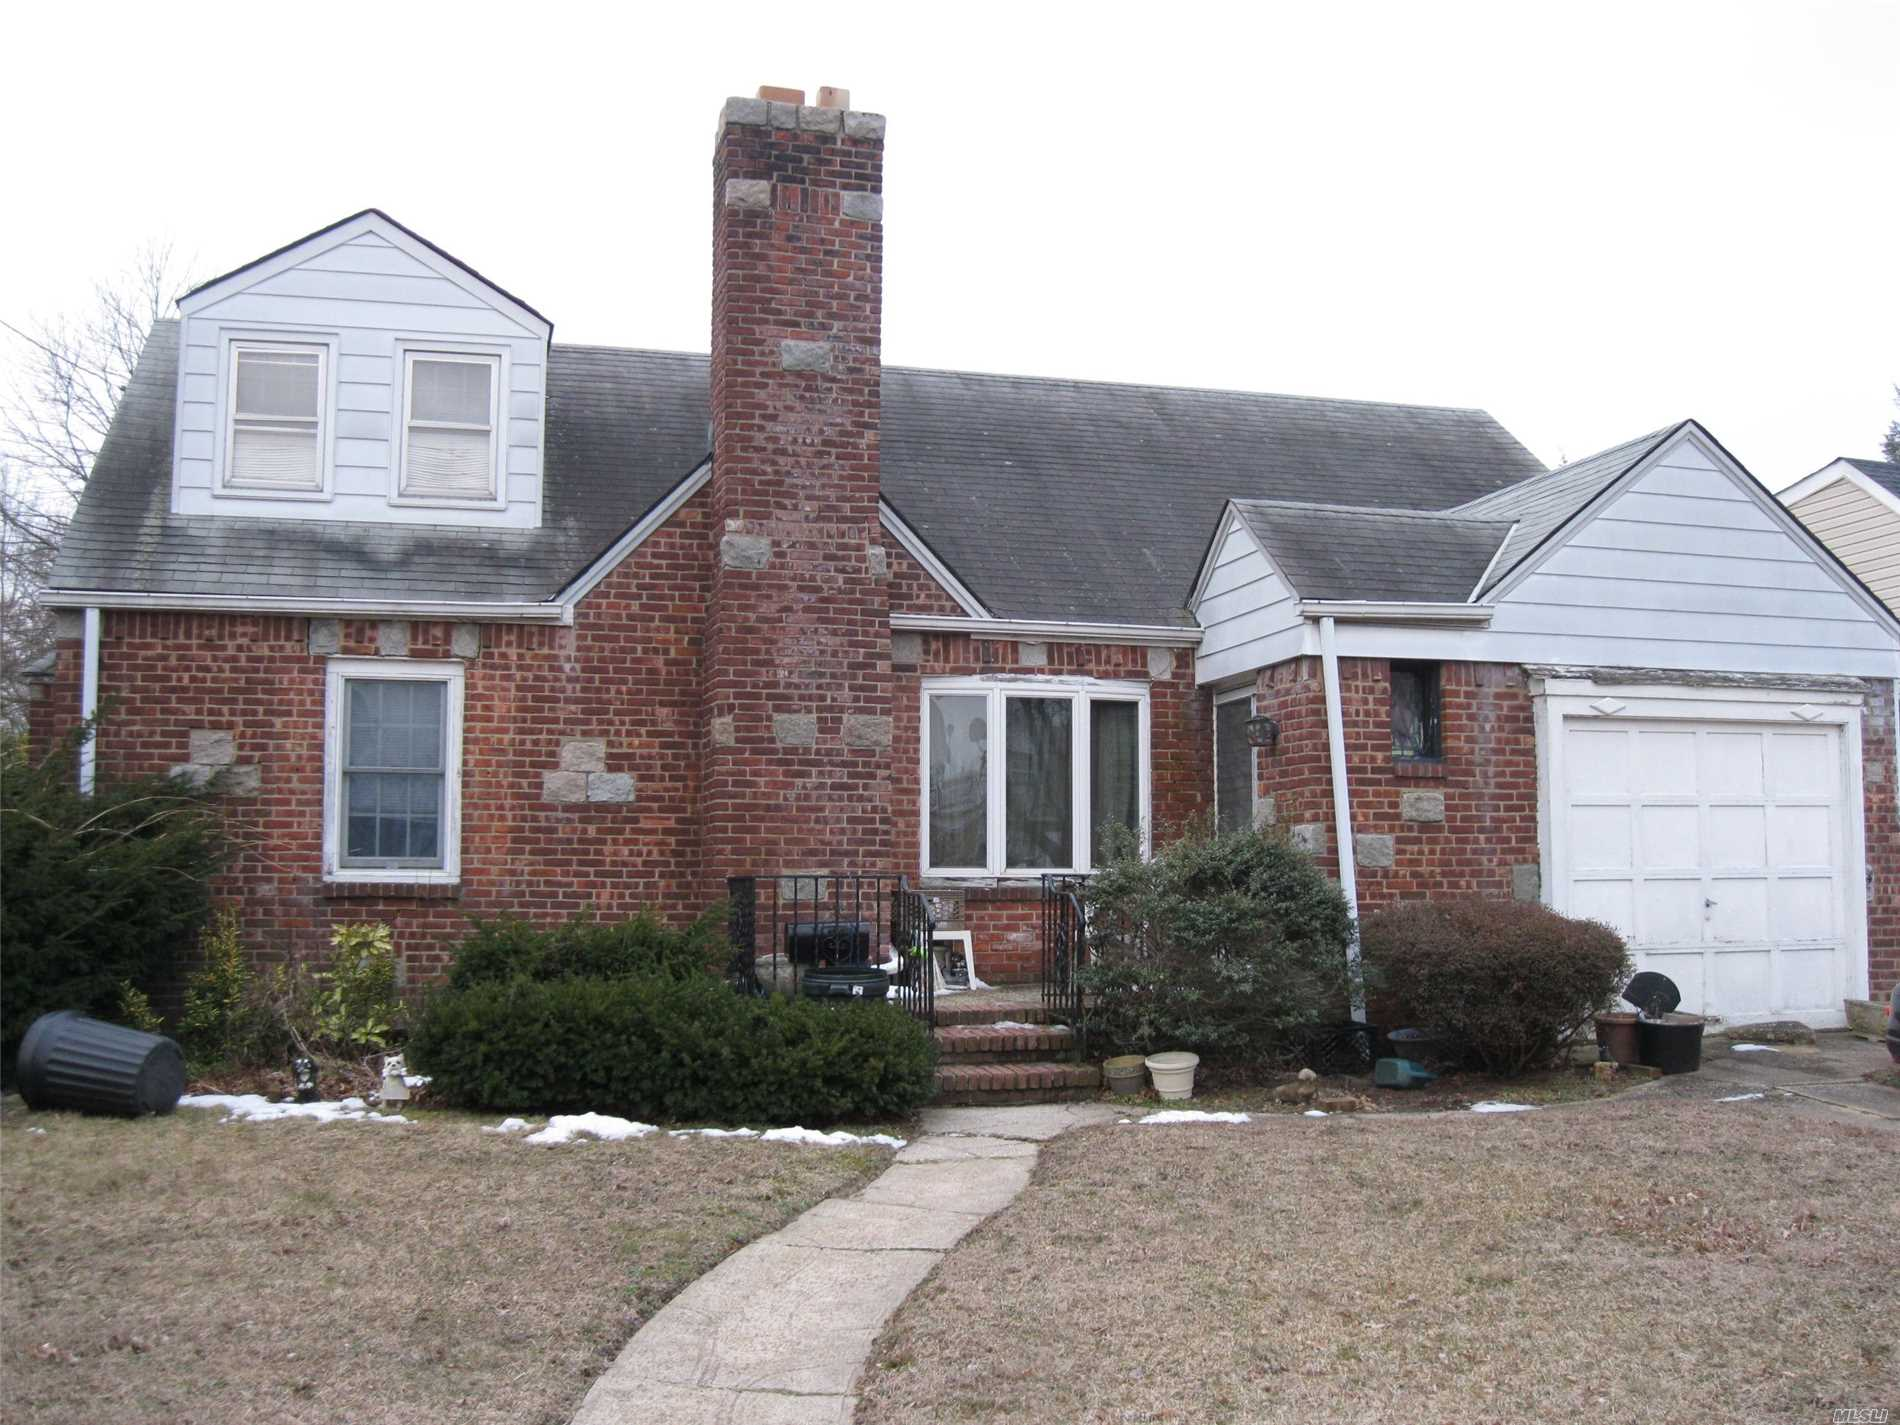 Home Needs Extensive Cleanout and Repairs and/or Rebuild. 4 Bedroom, 2 Bath Cape in West Hempstead. Minutes from Shopping, Highways and Schools.